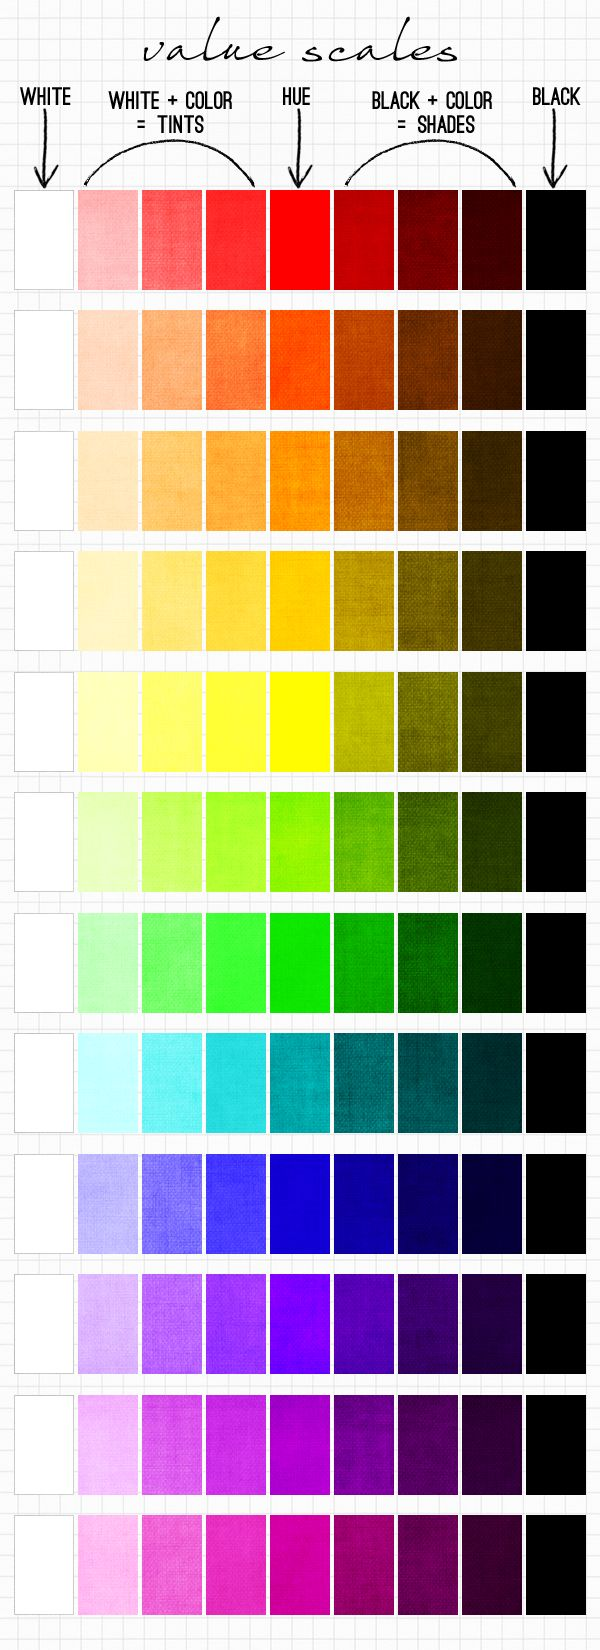 170 best color images on Pinterest | Braces color wheel, Color ...